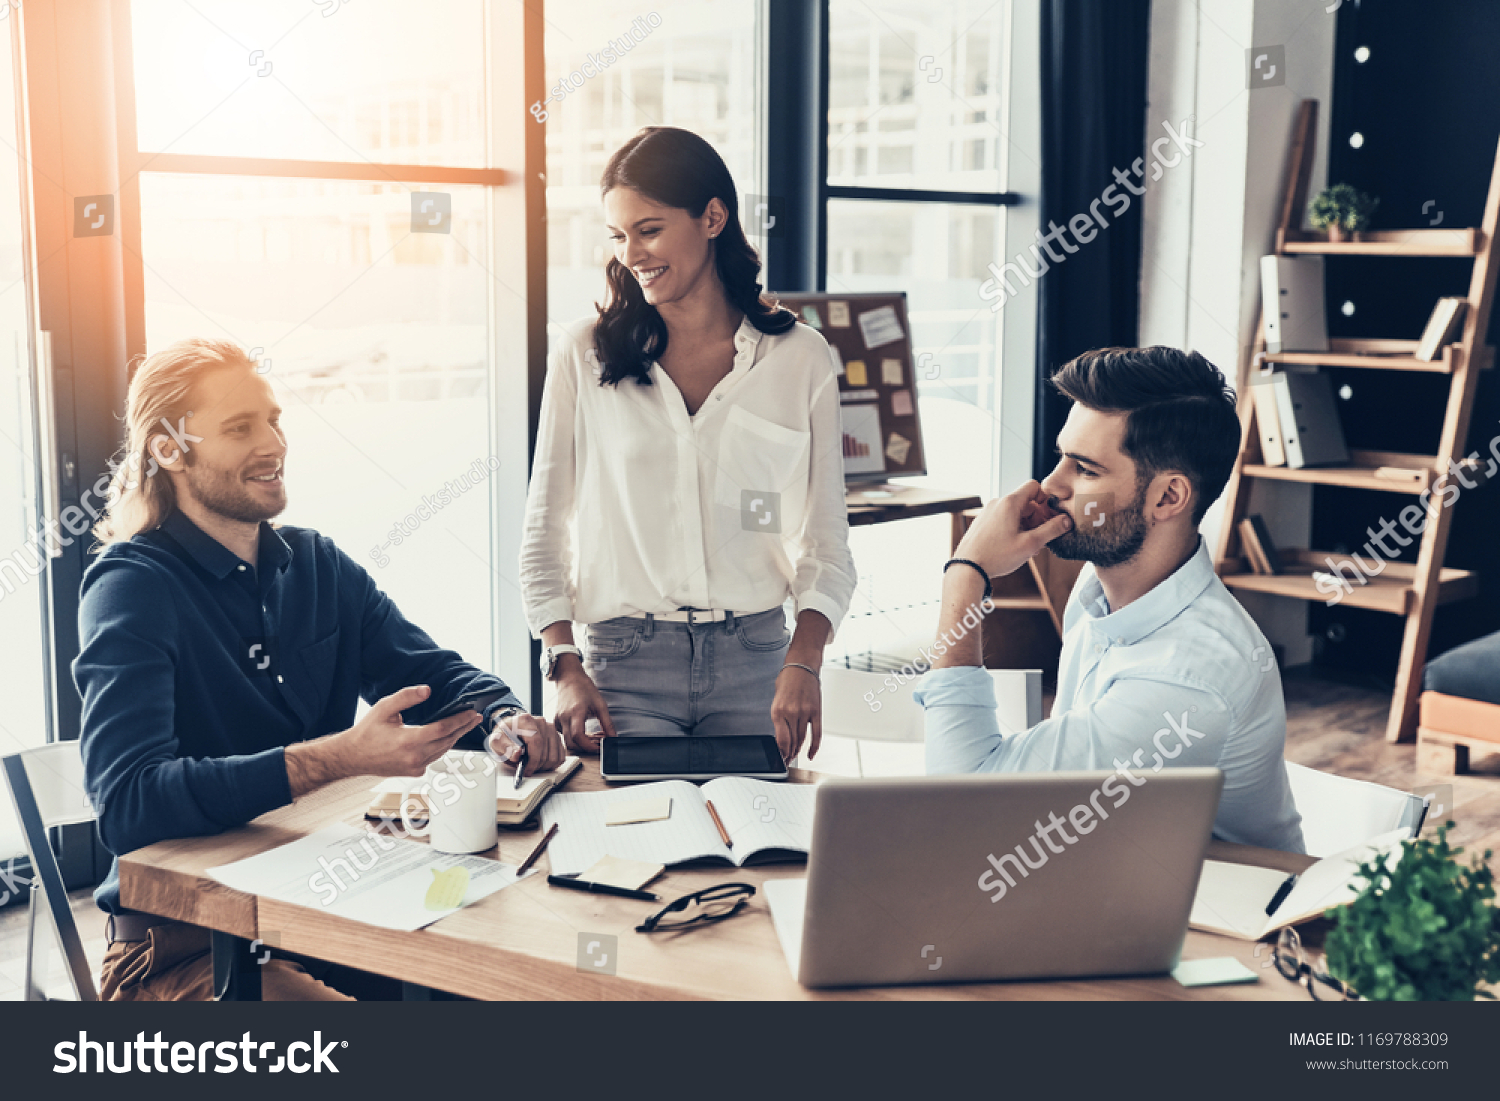 e1a0fa33ca8 Young coworkers. Young modern colleagues in smart casual wear working  together and smiling while spending